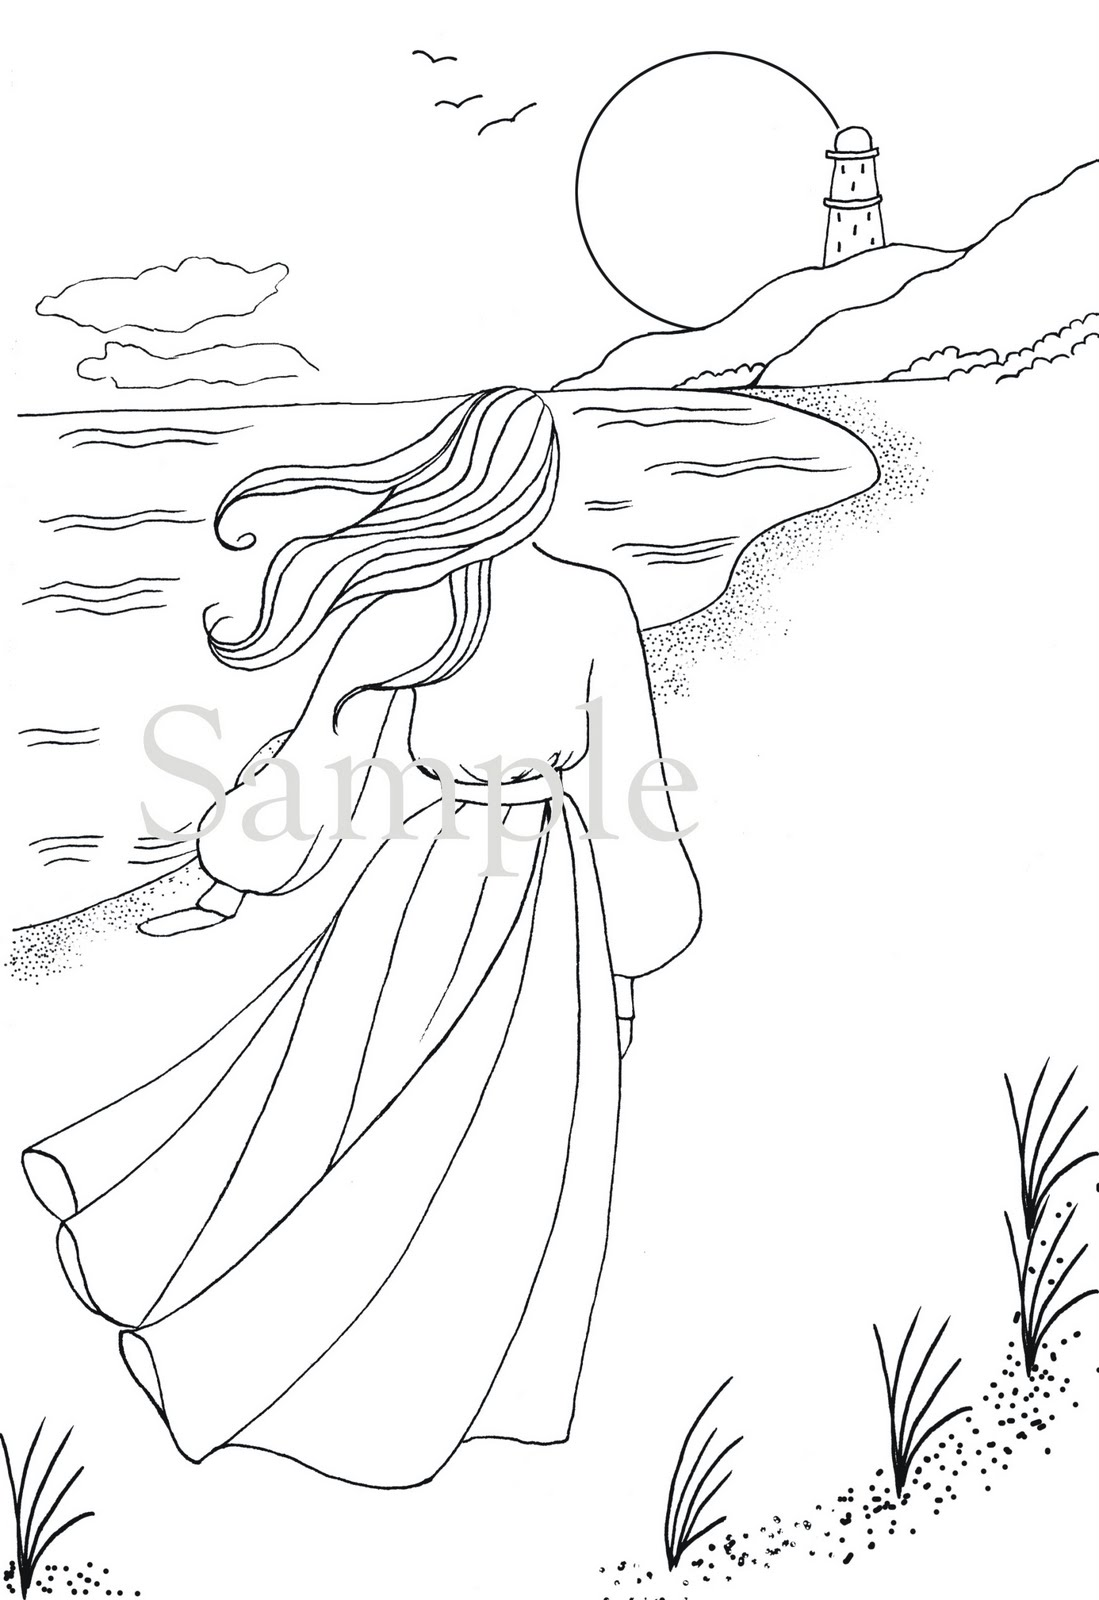 beach scene coloring pages - free beach scenery coloring pages